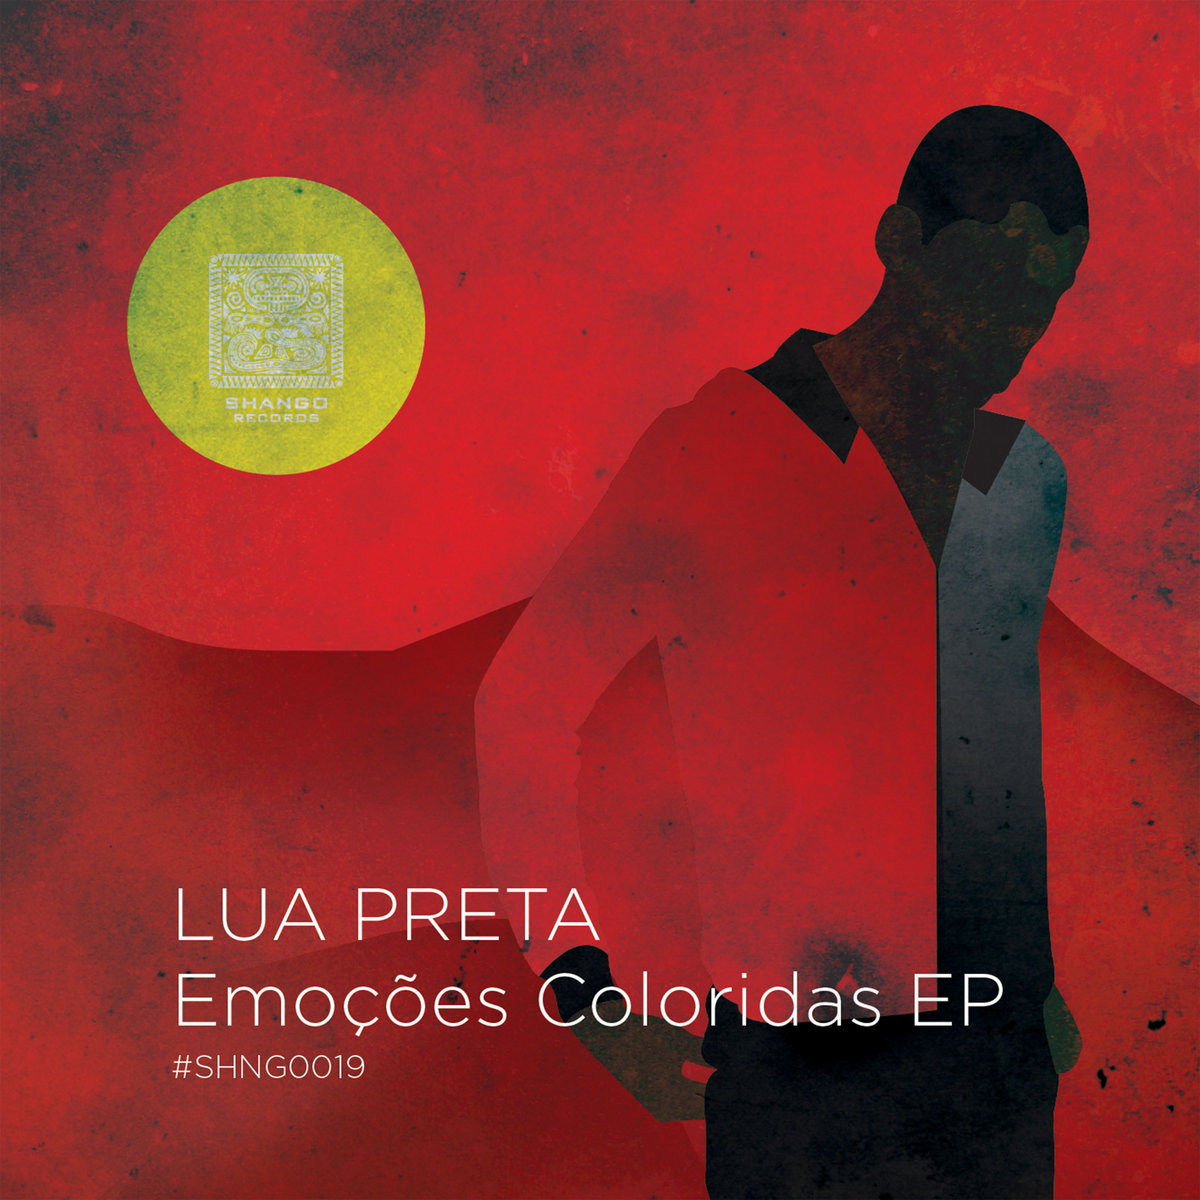 Introducing Lua Preta - half-Angolan and half-Polish dj/producer duo who just released a magnificent new EP bringing together Afro House with traditional african music.